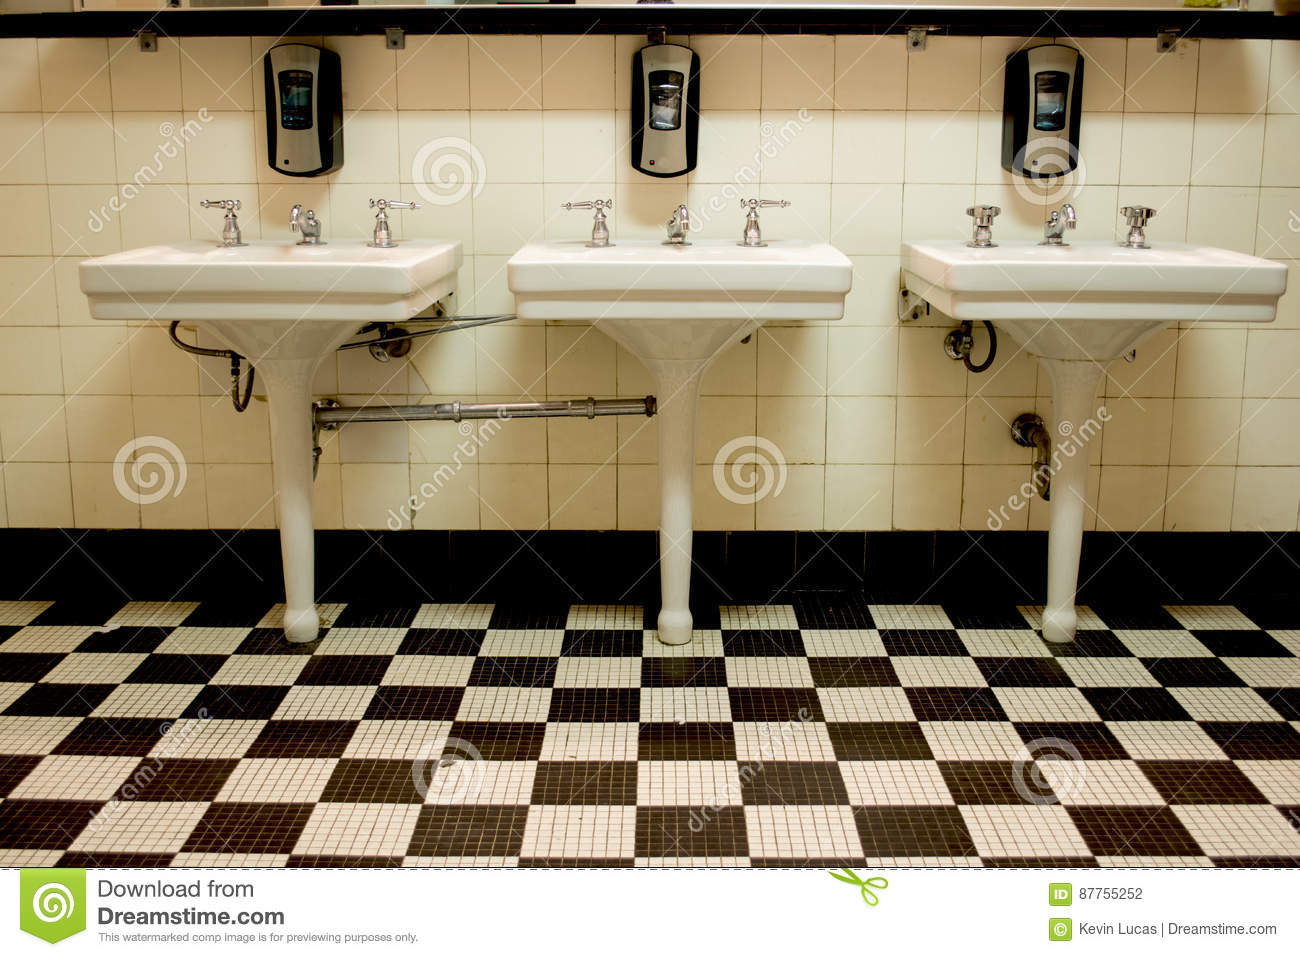 Three Sinks In Old Public Restroom Stock Photo Image Of Checkerboard Male 87755252